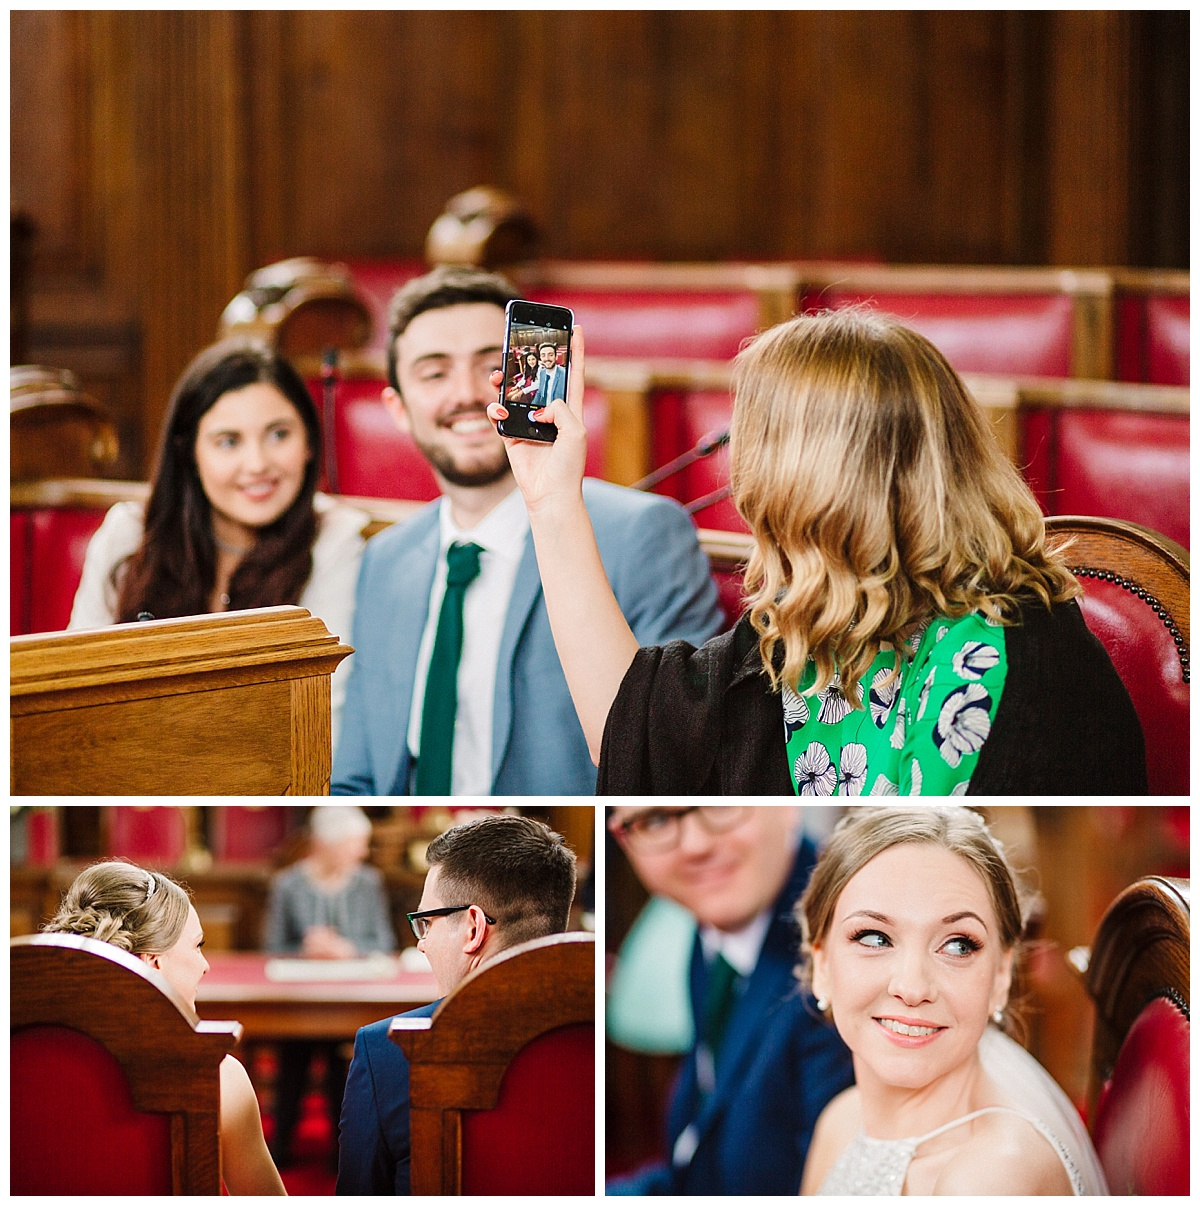 a wedding in the council chamber room at islington town hall